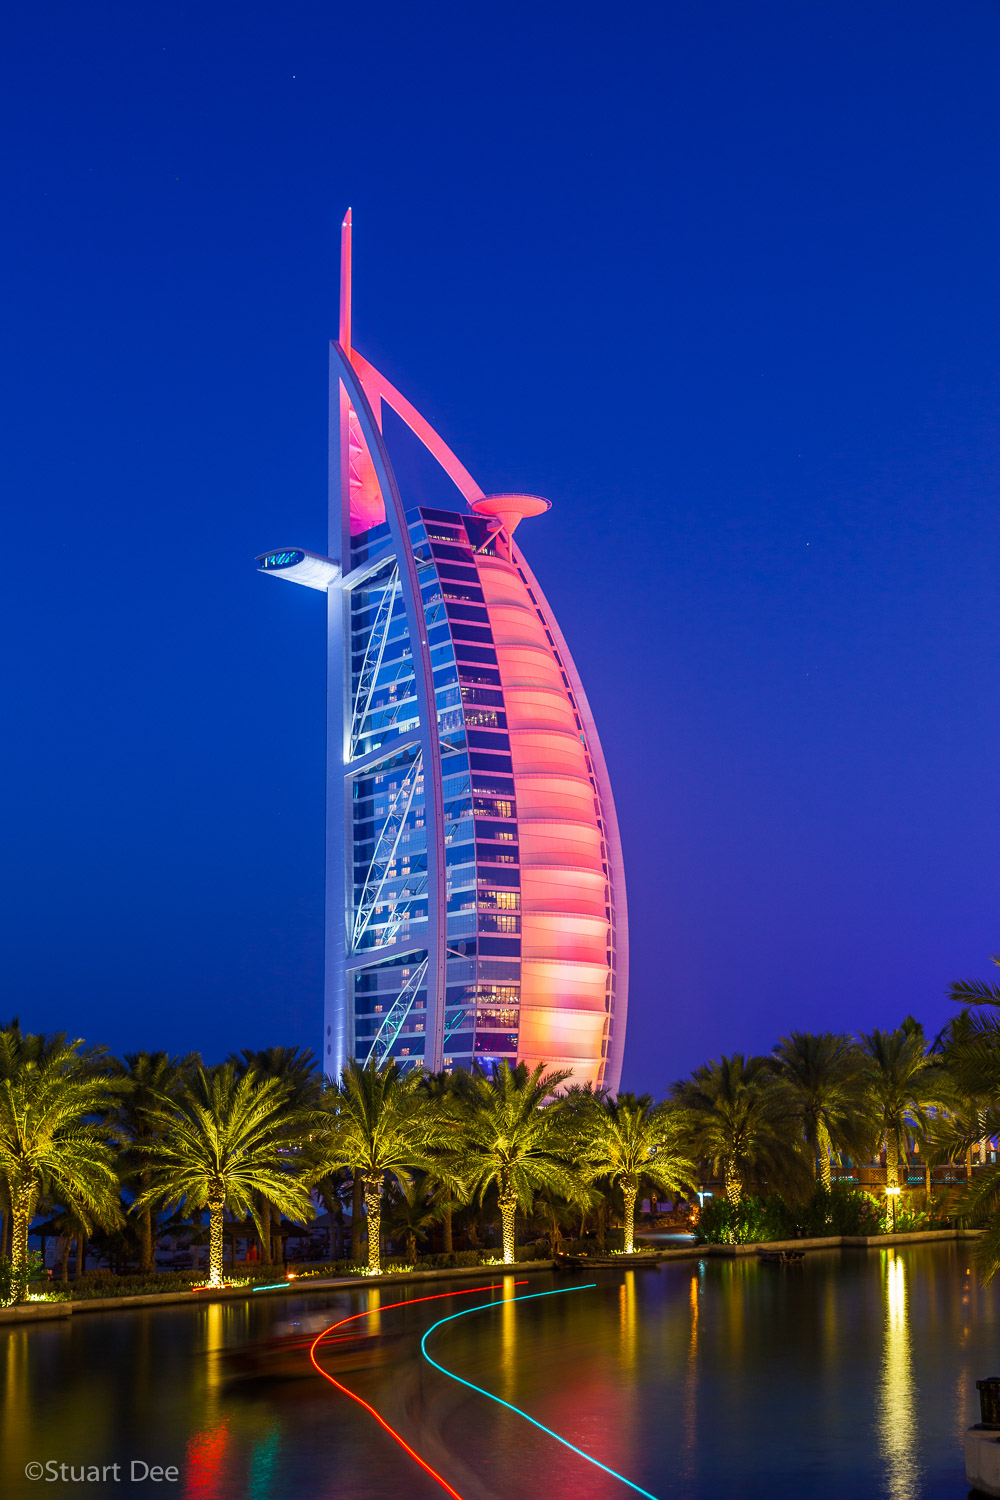 Burj Al Arab at night, Dubai City, Dubai, UAE. The hotel is a symbol of Dubai.